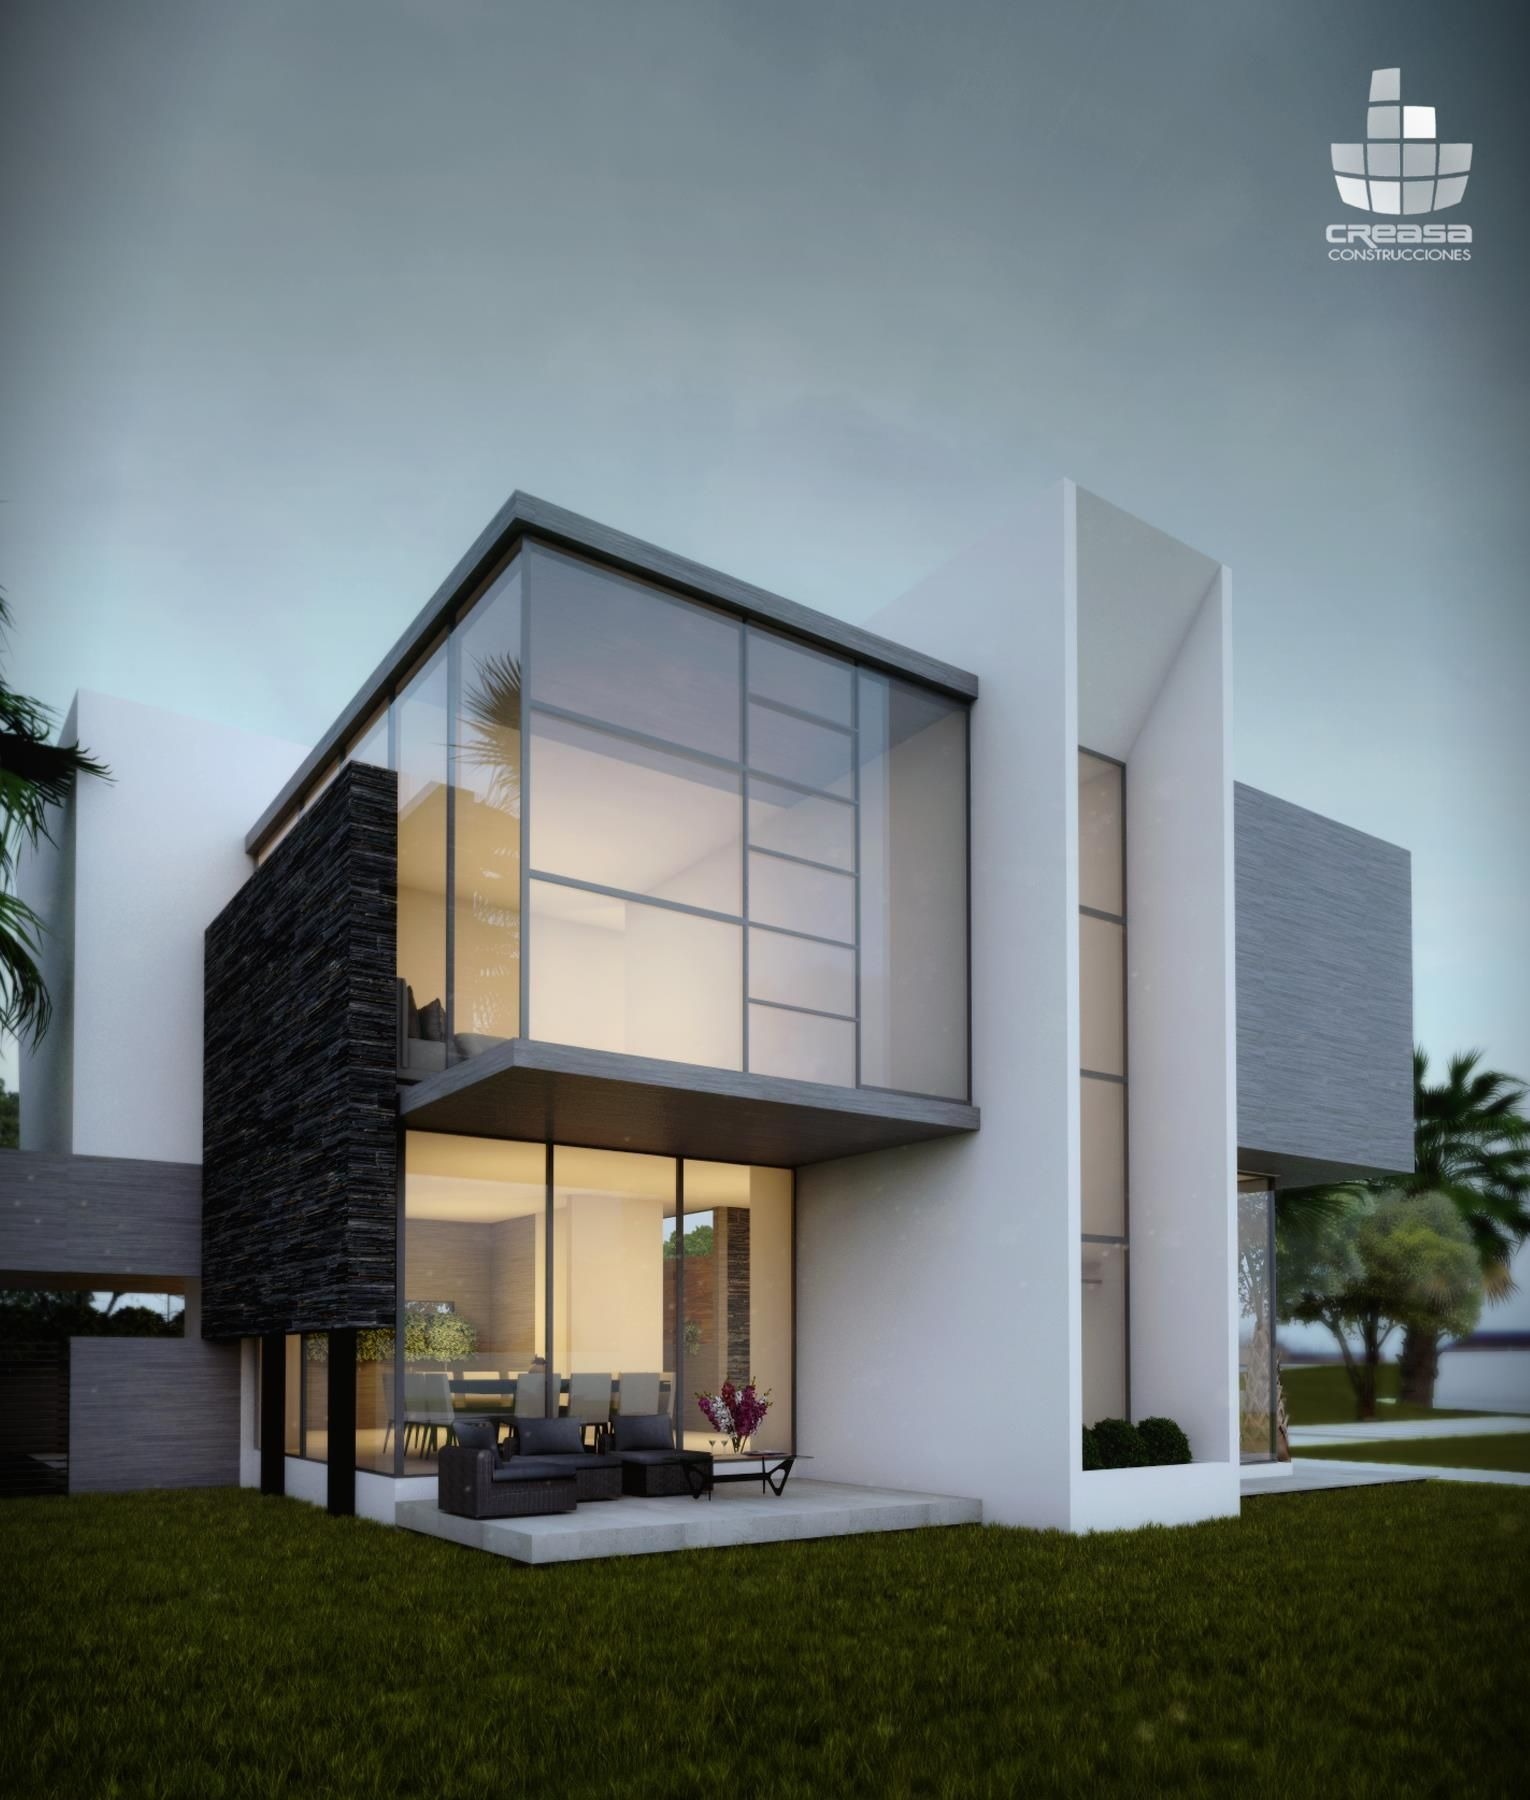 Creasa modern architecture pinterest villas house for Modern tage house design